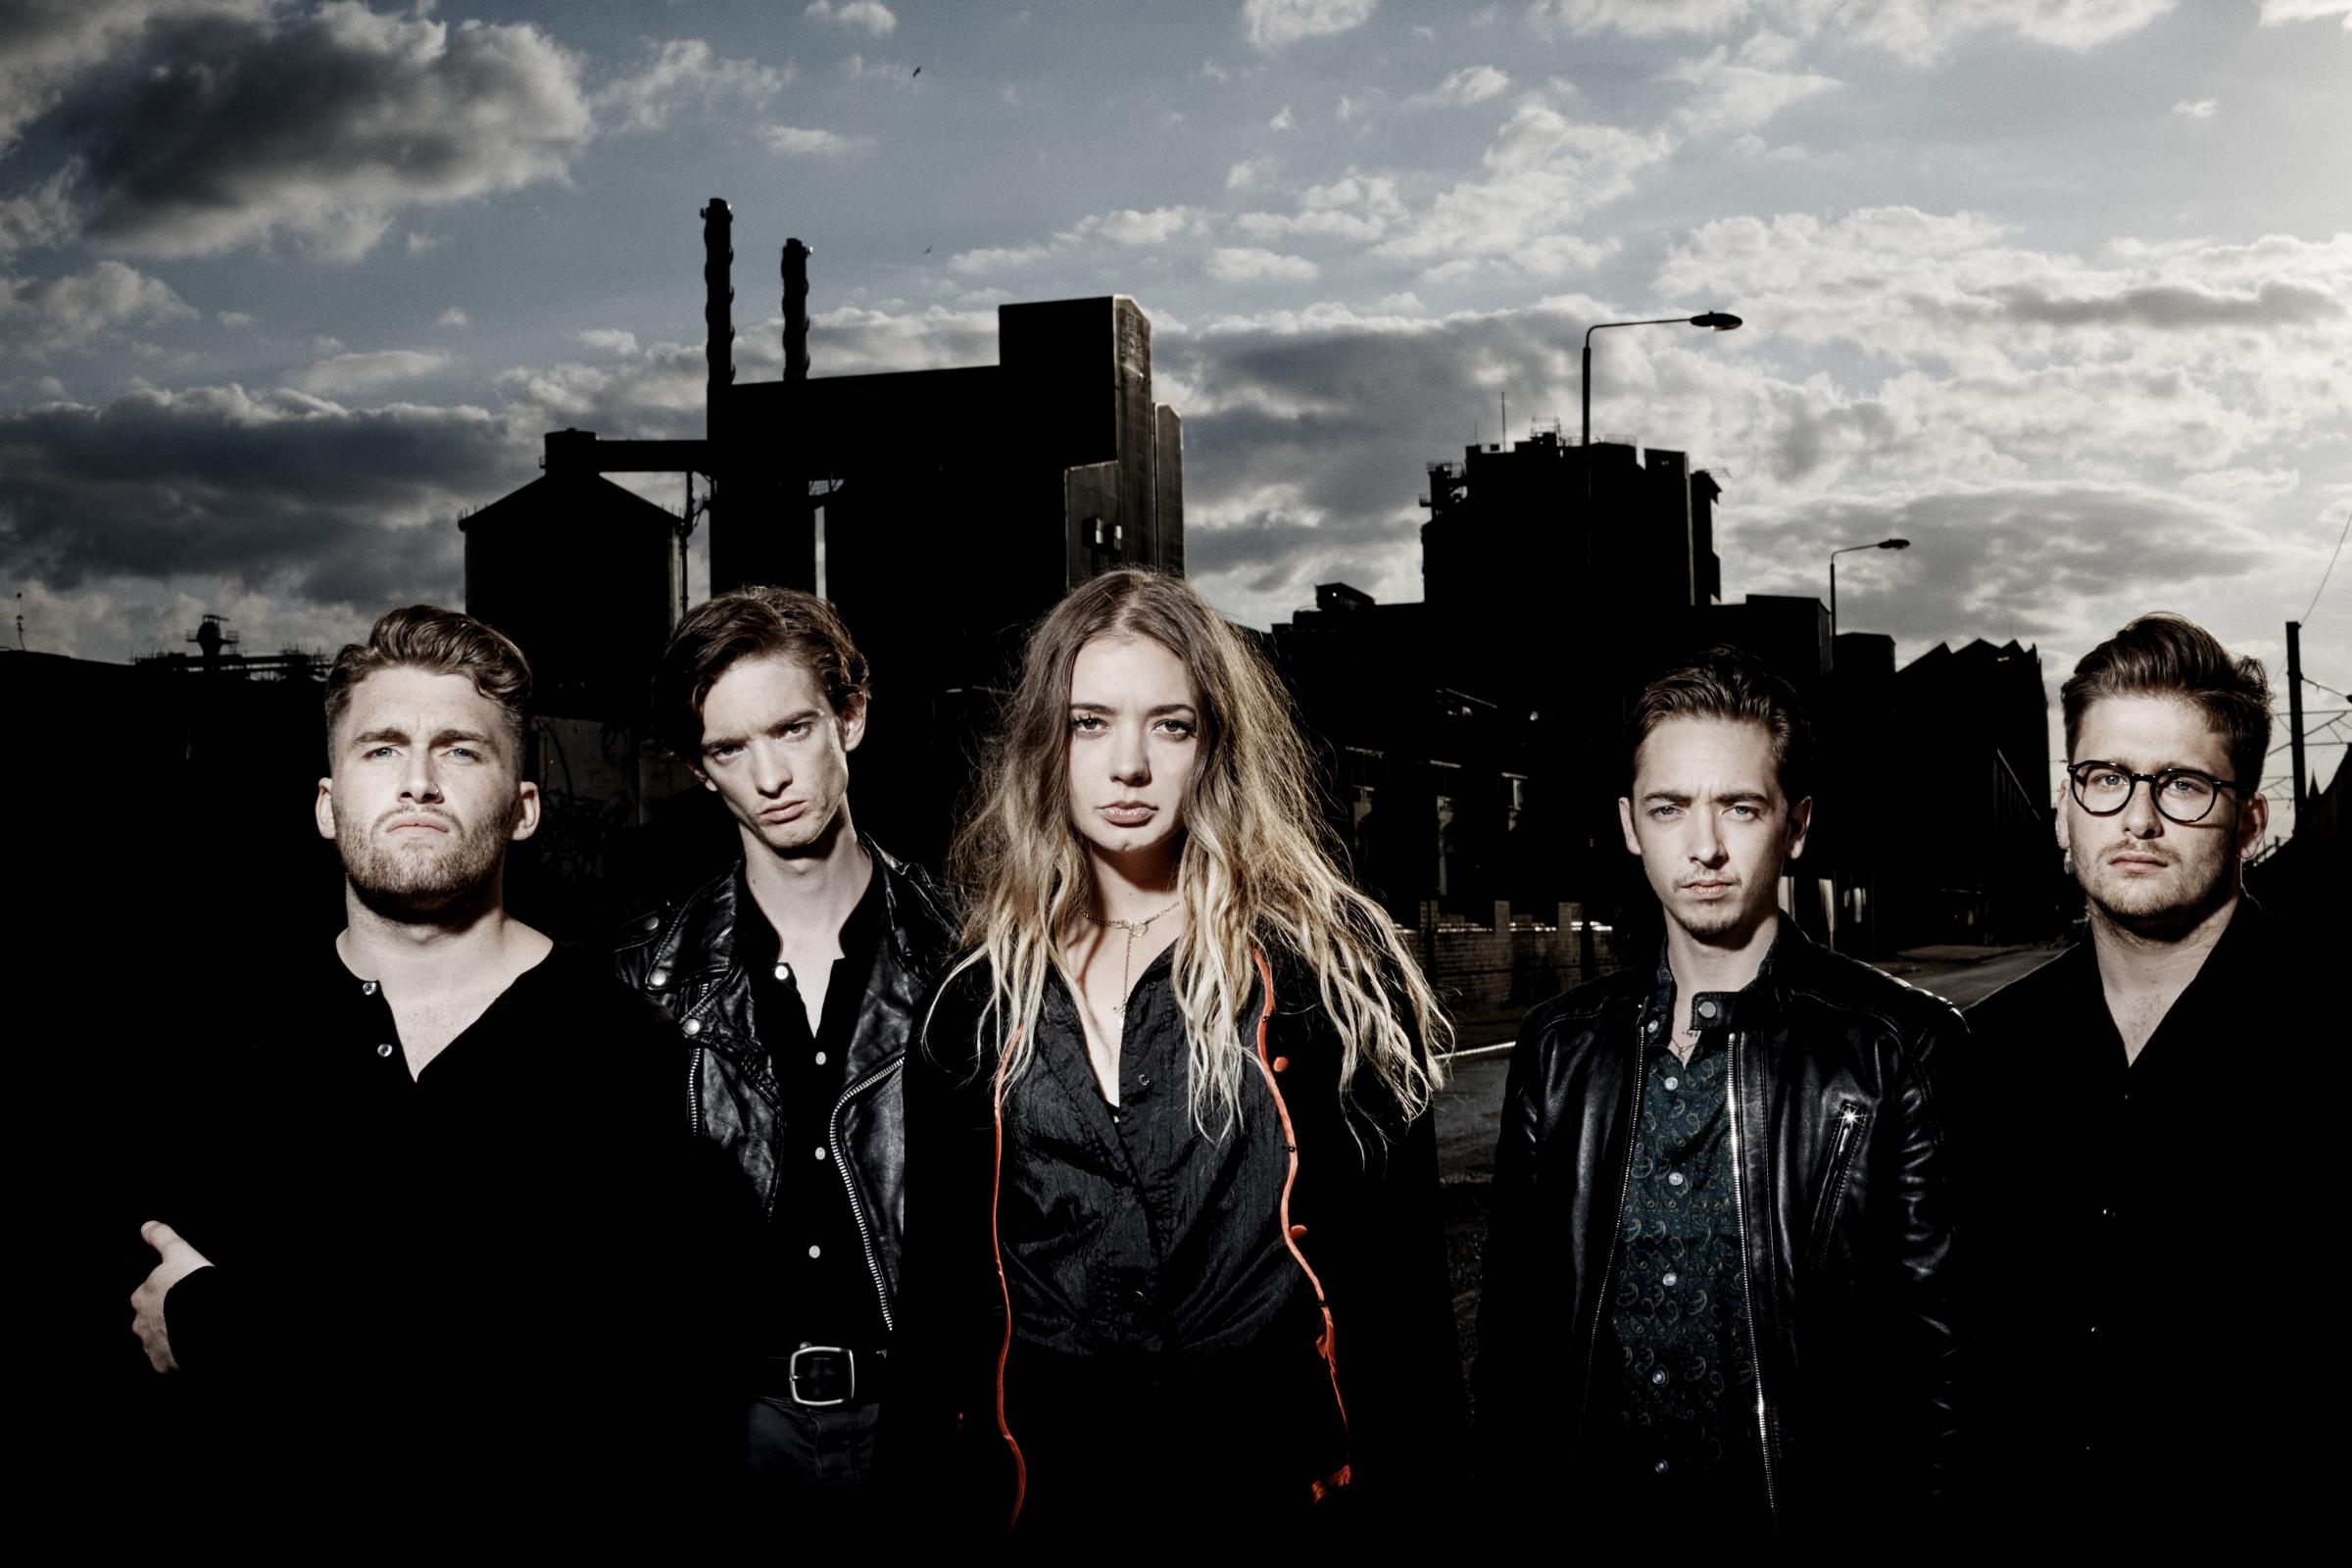 Marmozets are back with a new album and want more success